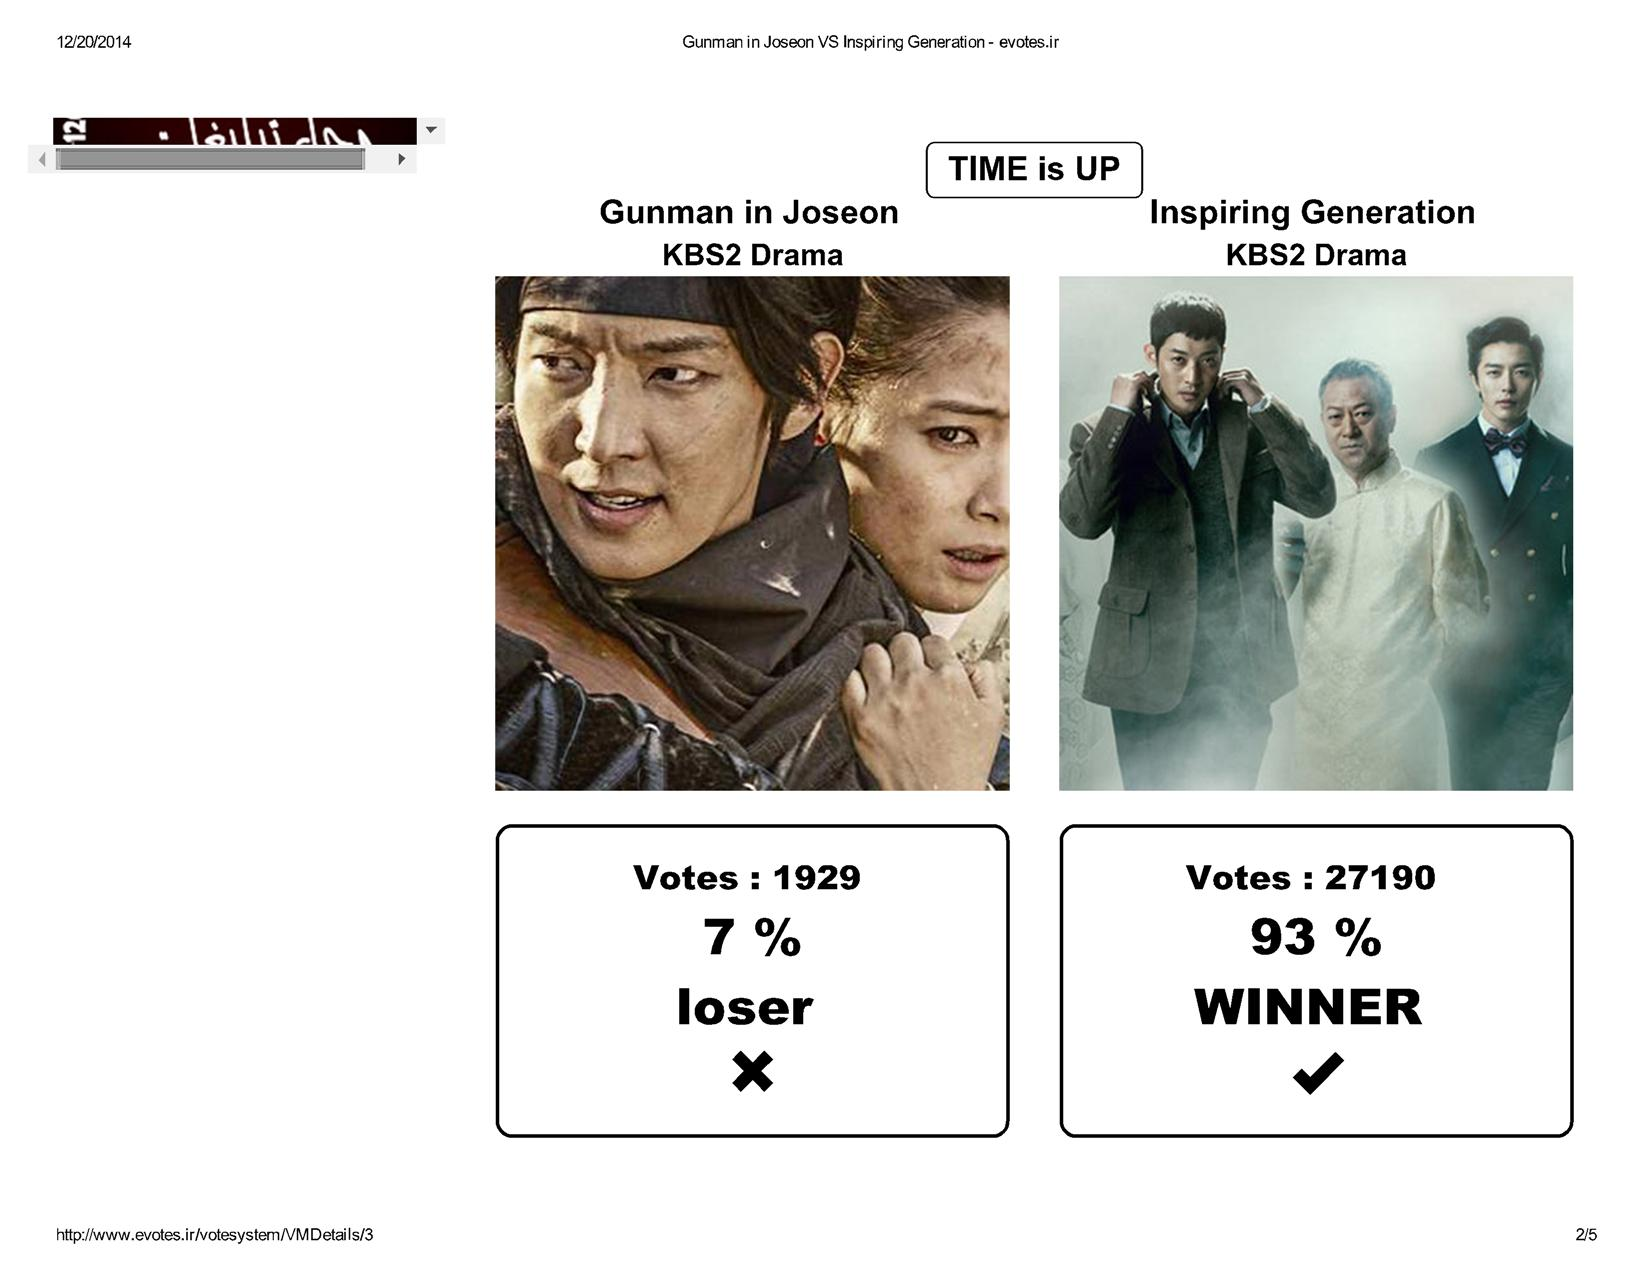 Gunman in Joseon VS Inspiring Generation